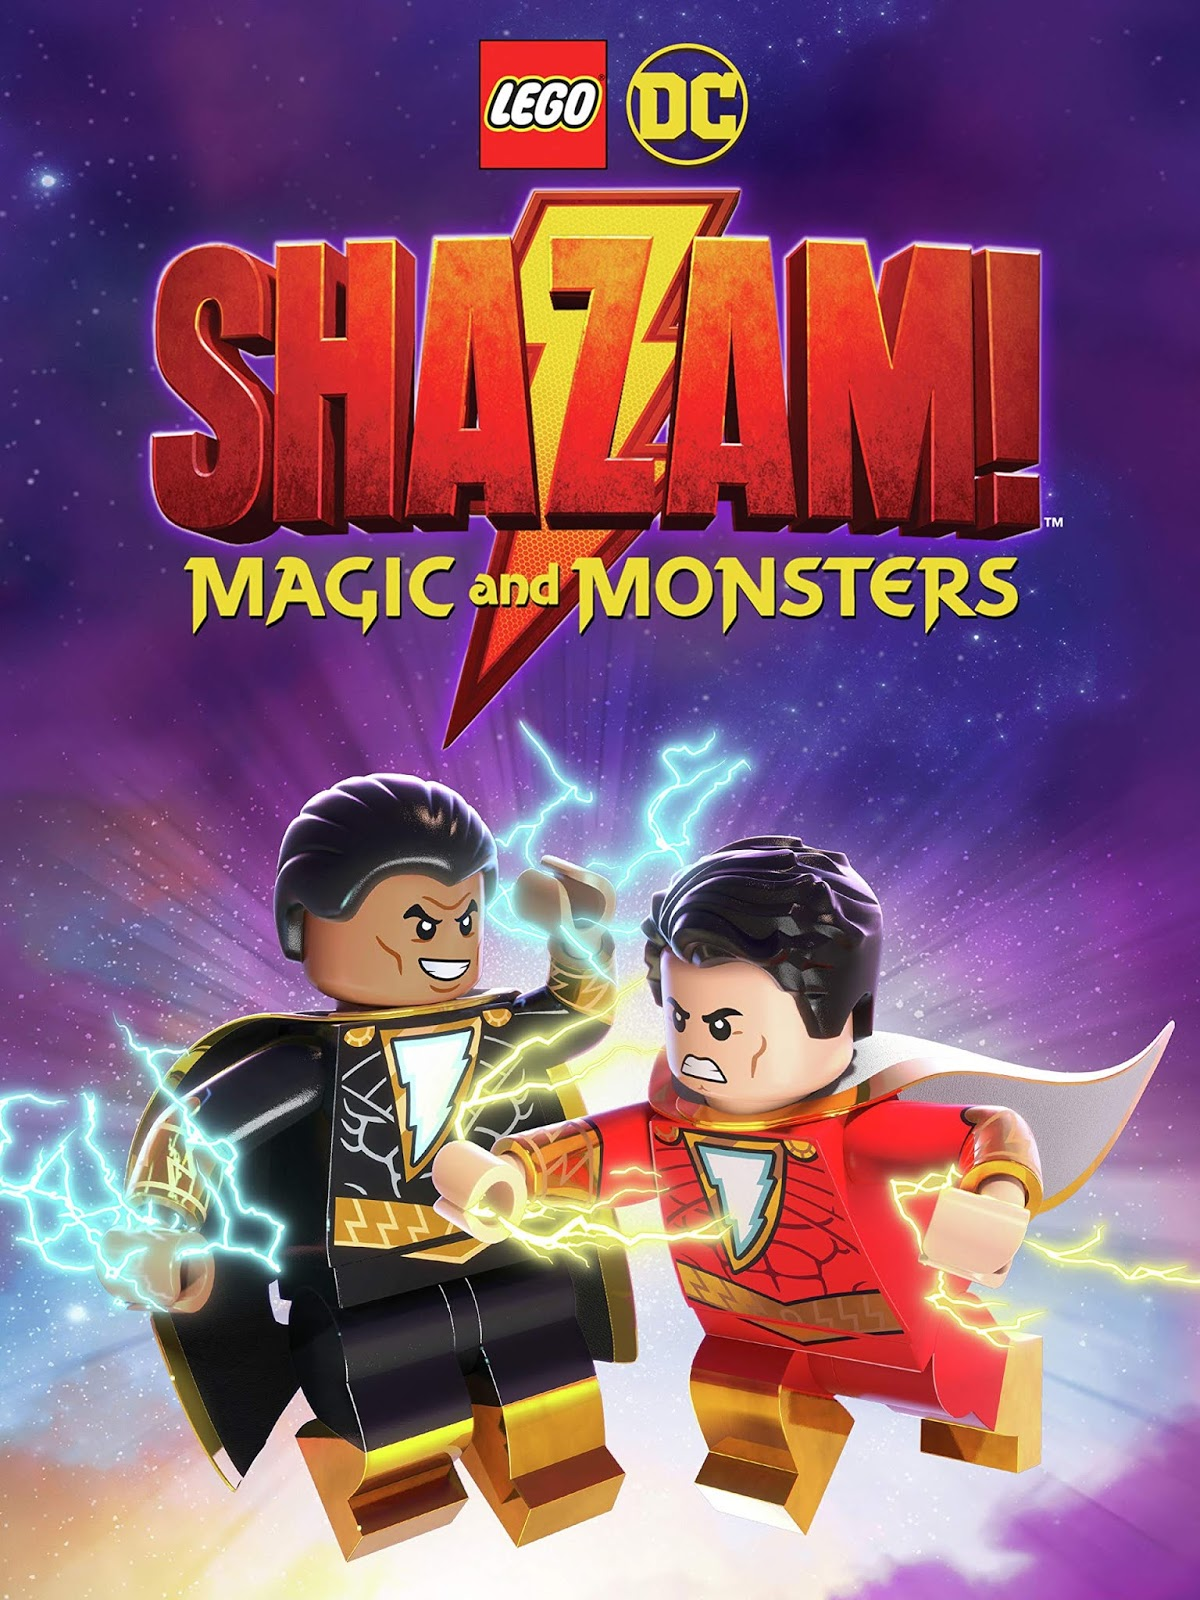 Lego DC: Shazam!: Magic and Monsters [2020] [CUSTOM HD] [DVDR] [NTSC] [Latino]